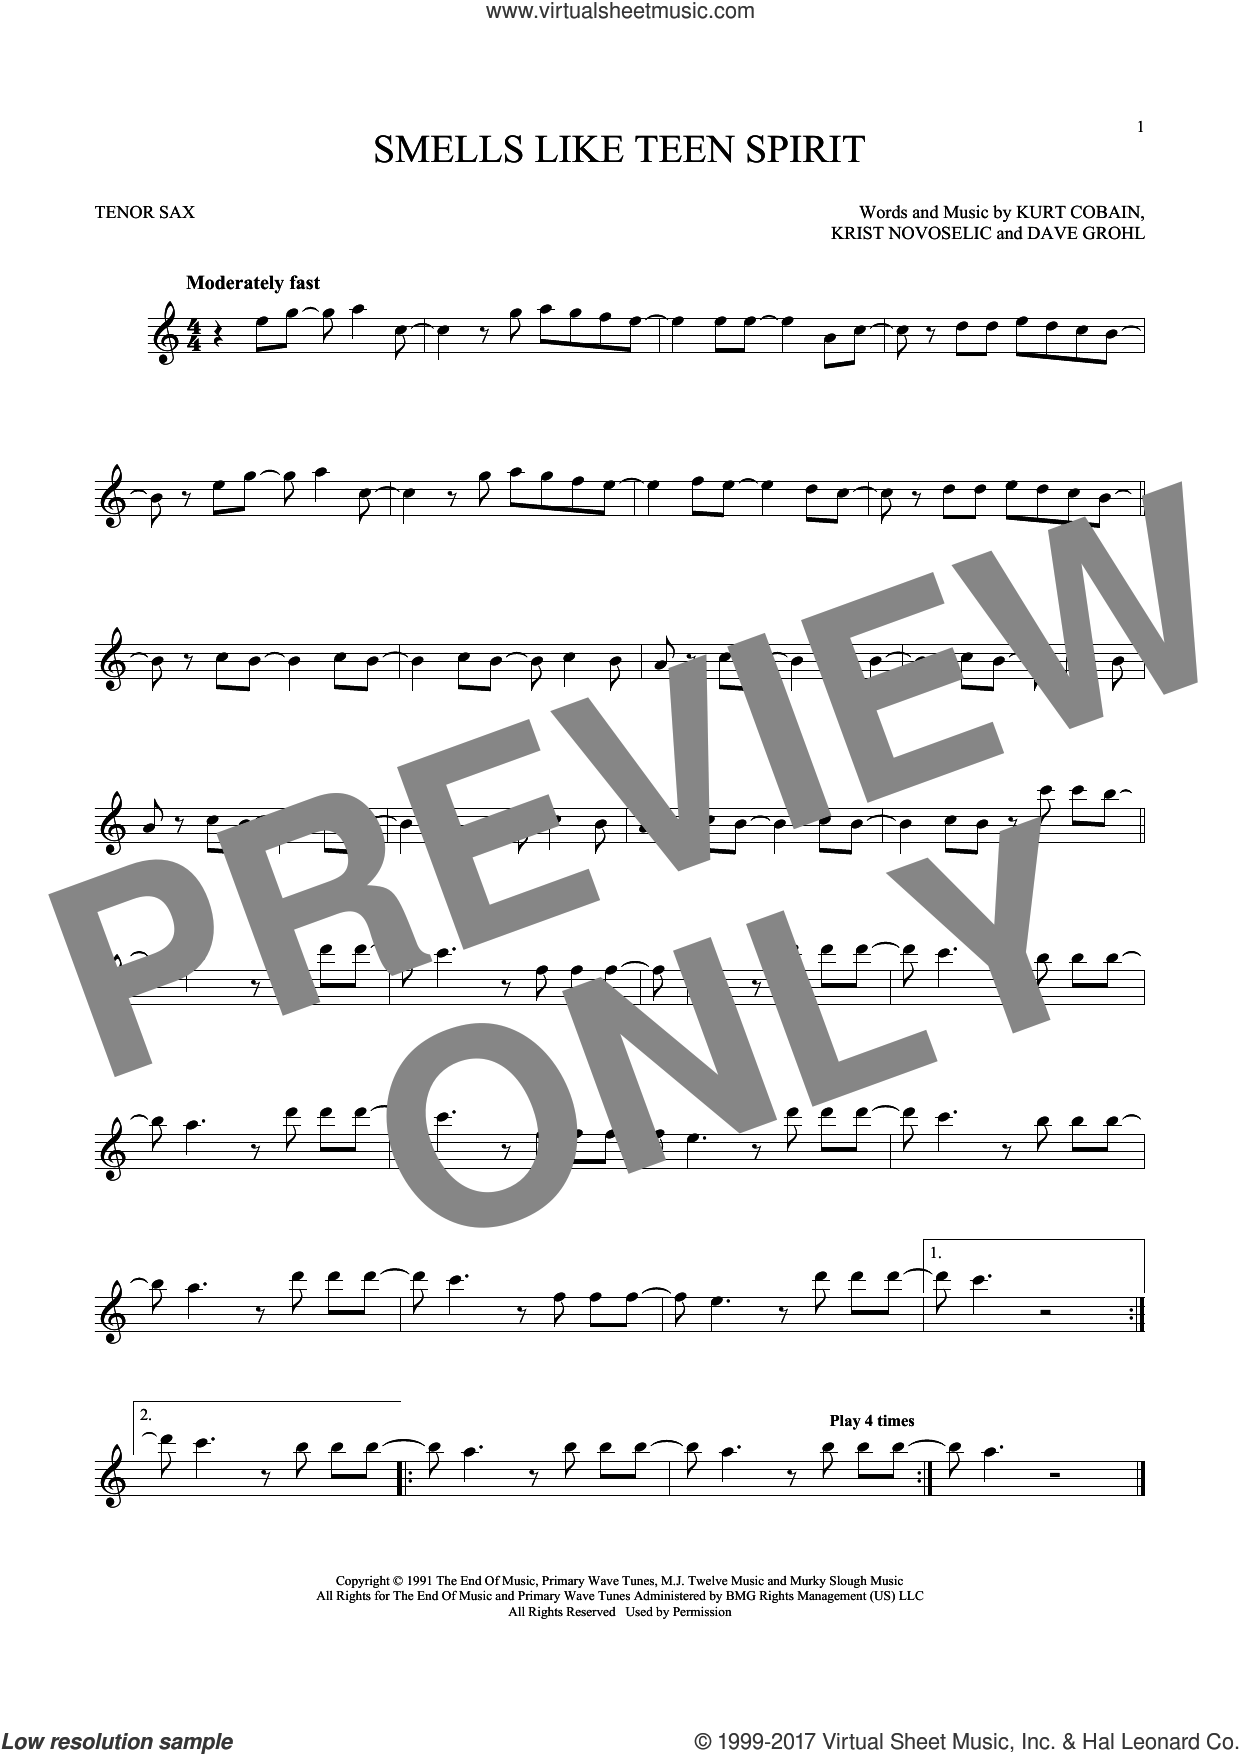 Smells Like Teen Spirit sheet music for tenor saxophone solo by Nirvana, Dave Grohl, Krist Novoselic and Kurt Cobain, intermediate skill level